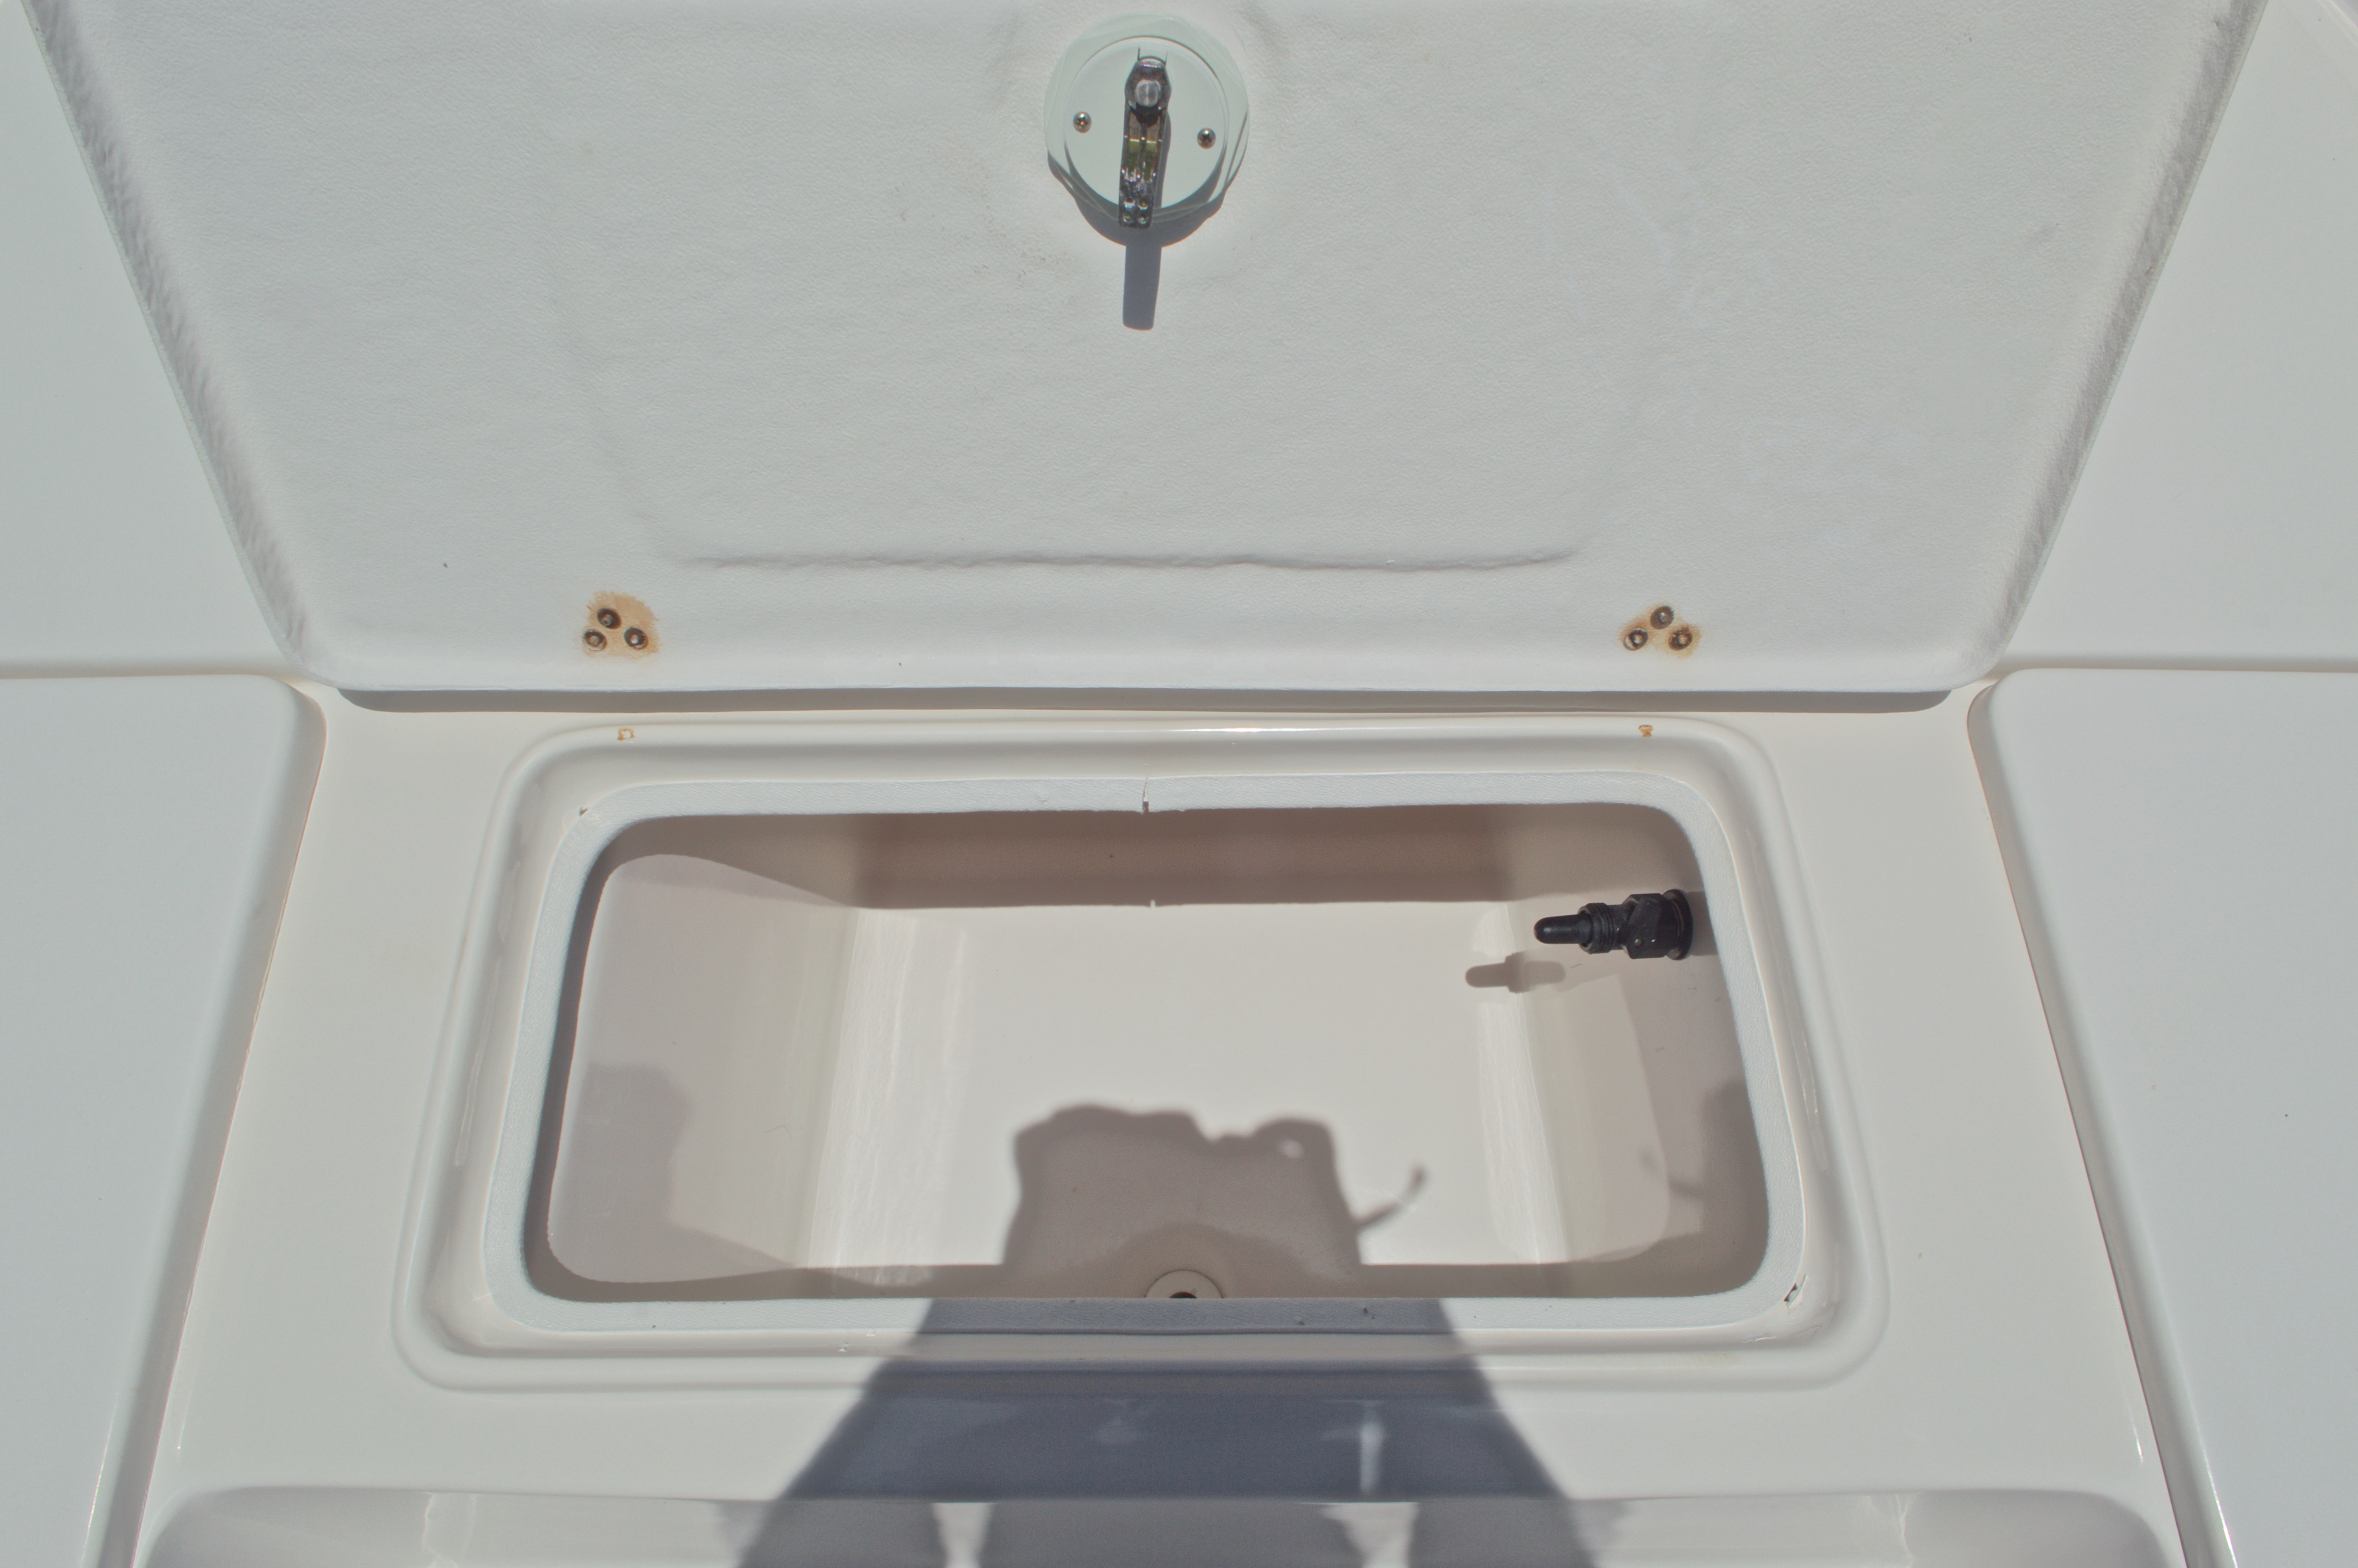 Thumbnail 56 for Used 2005 Sea Chaser 245 Bay Runner LX boat for sale in West Palm Beach, FL